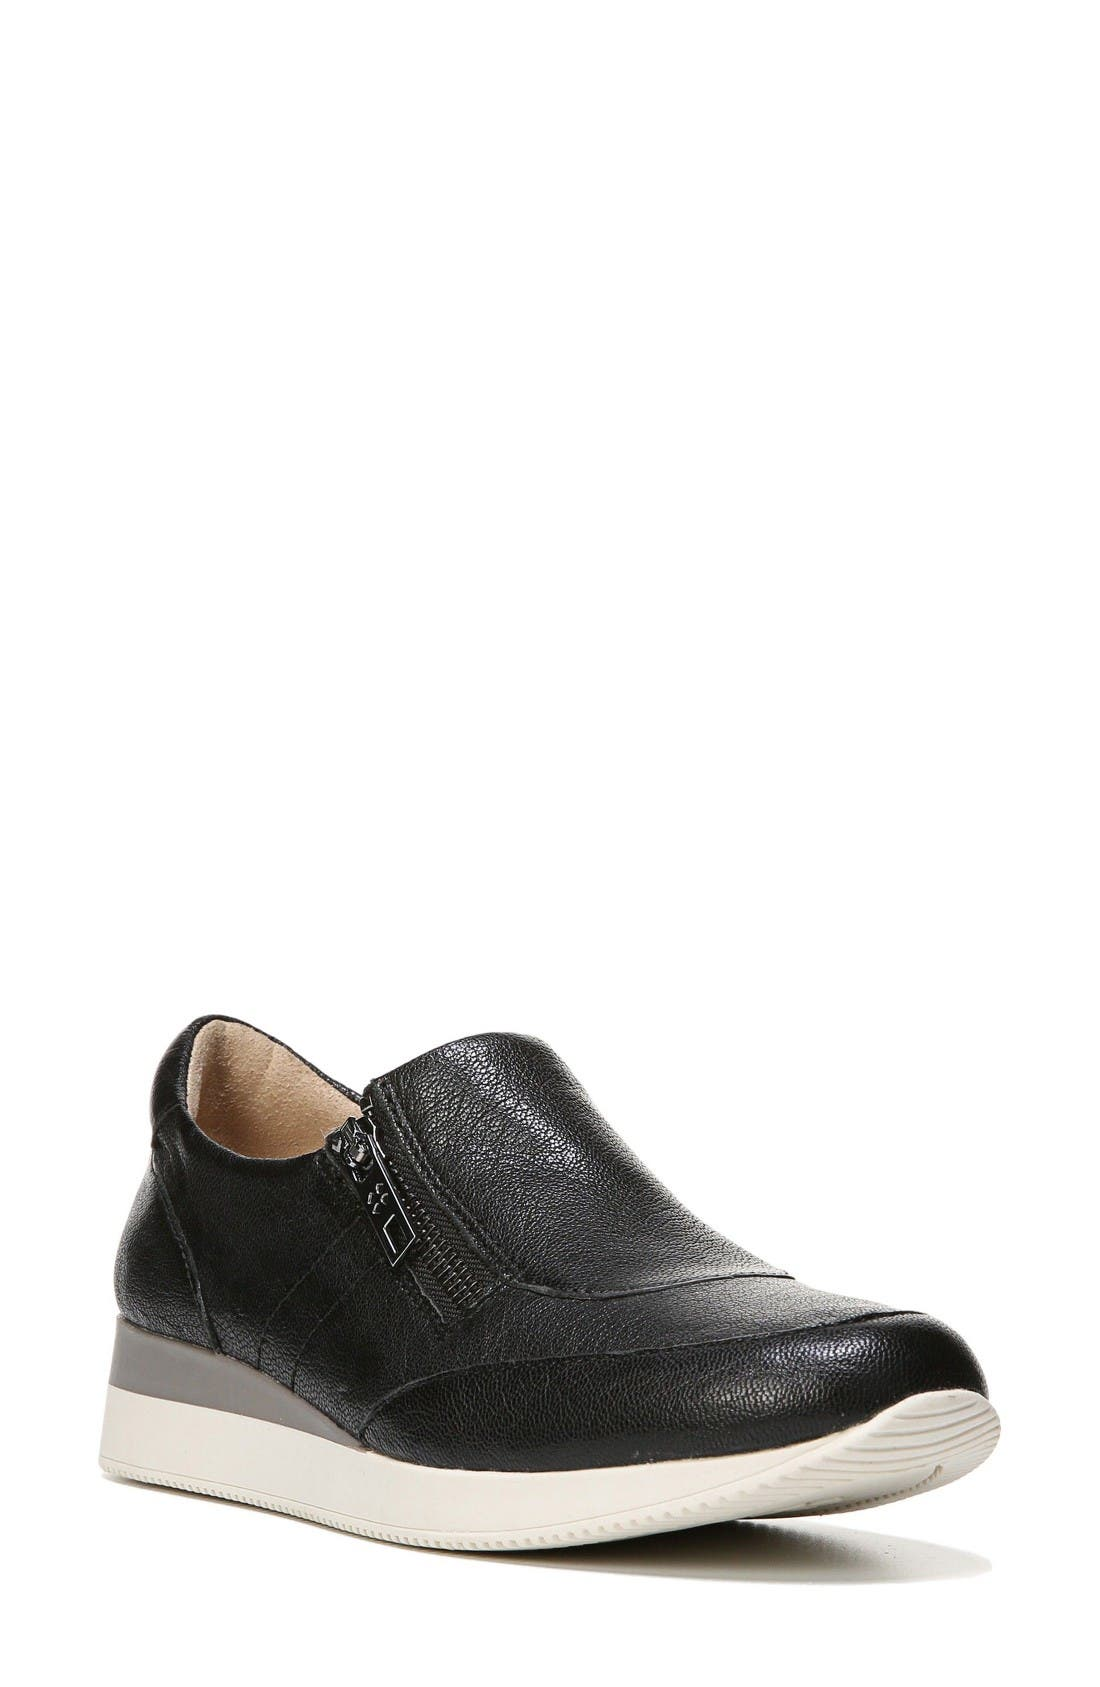 Jetty Sneaker,                         Main,                         color, Black Leather